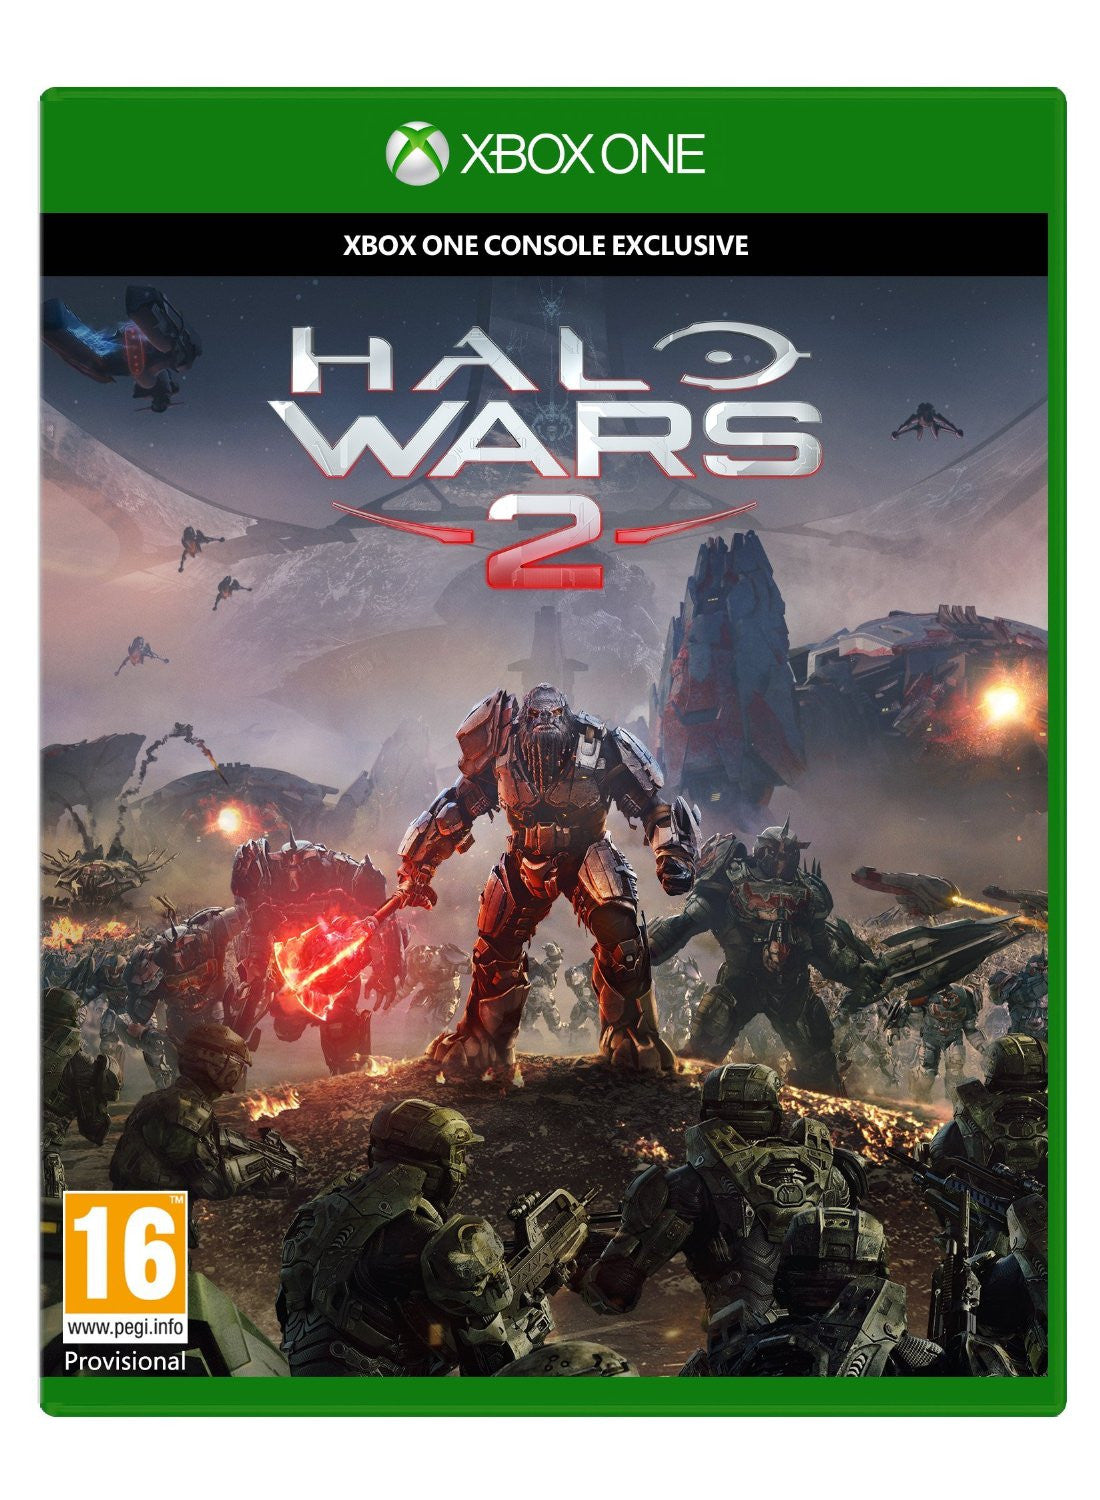 Halo Wars 2 -  Xbox Exclusive